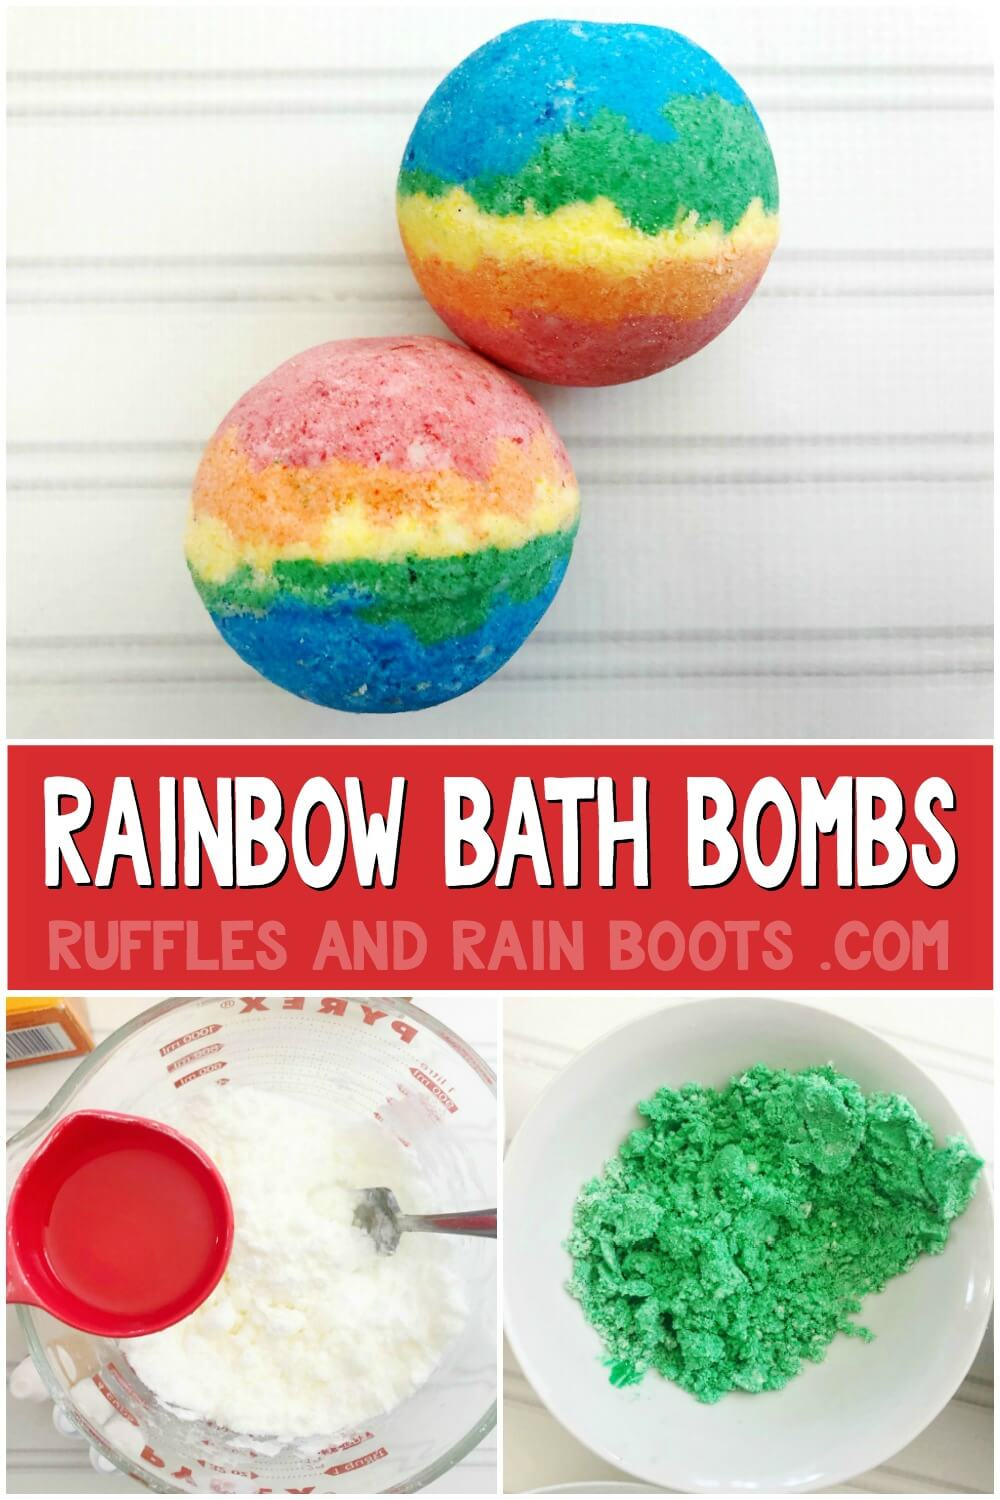 photo collage of how to make rainbow bath bombs and finished rainbow bath bombs with text which reads rainbow bath bombs